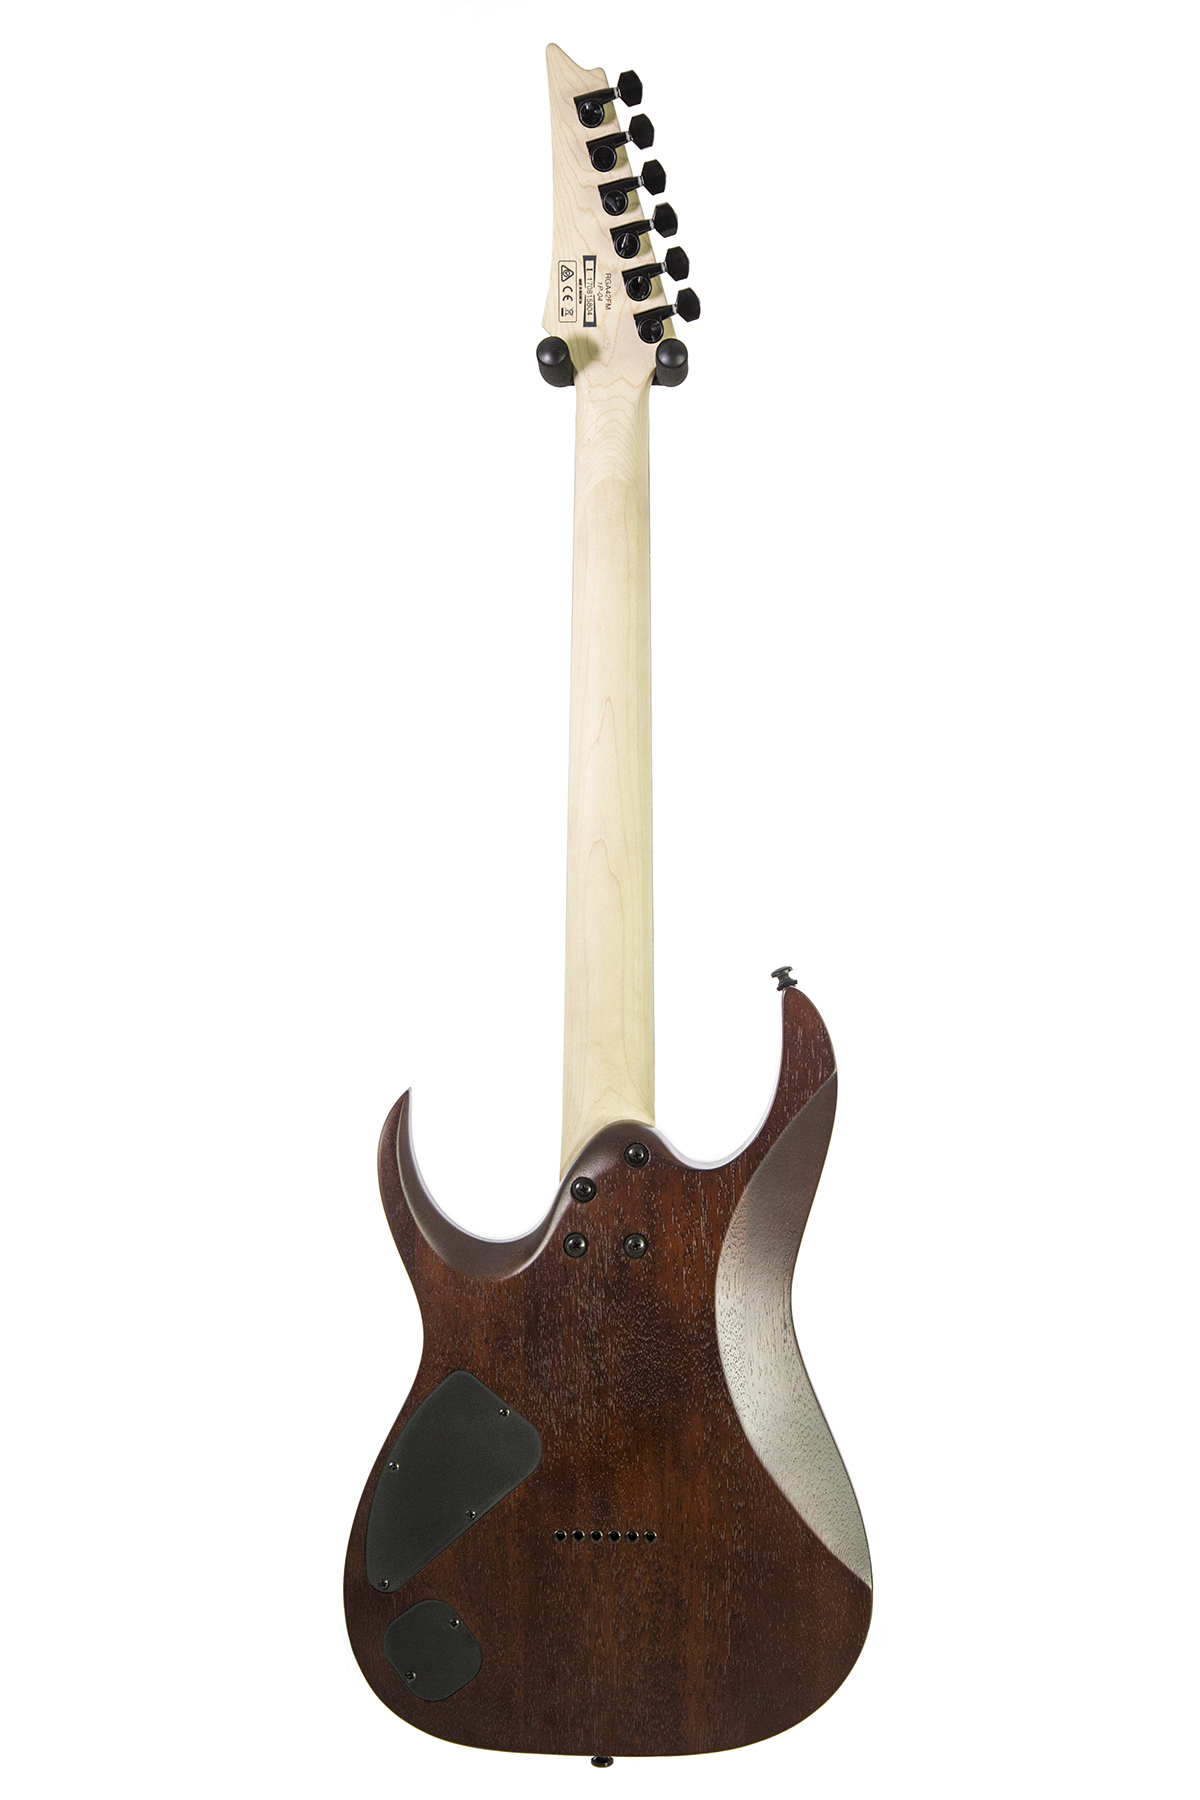 brand new ibanez rga series rga42fm dragon eye burst flat electric guitar new york music emporium. Black Bedroom Furniture Sets. Home Design Ideas